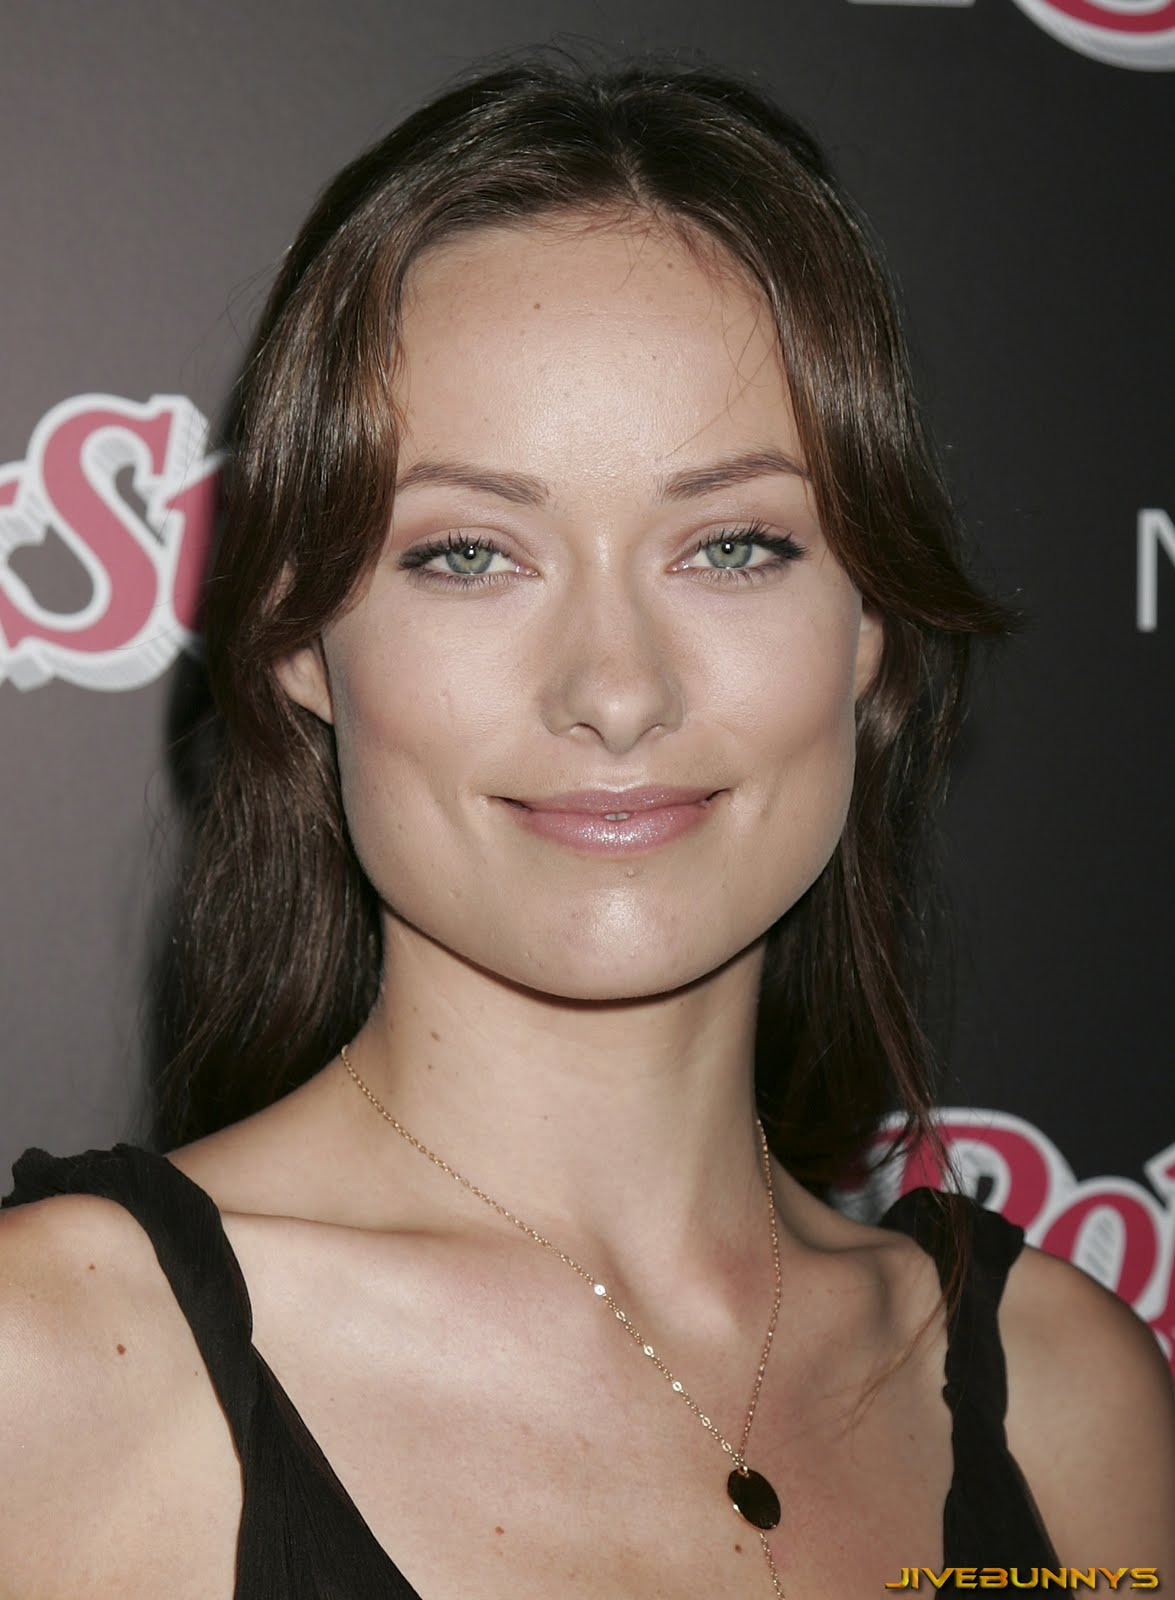 Olivia Wilde Profile And New Pictures 2013: Olivia Wilde Special Pictures (7)